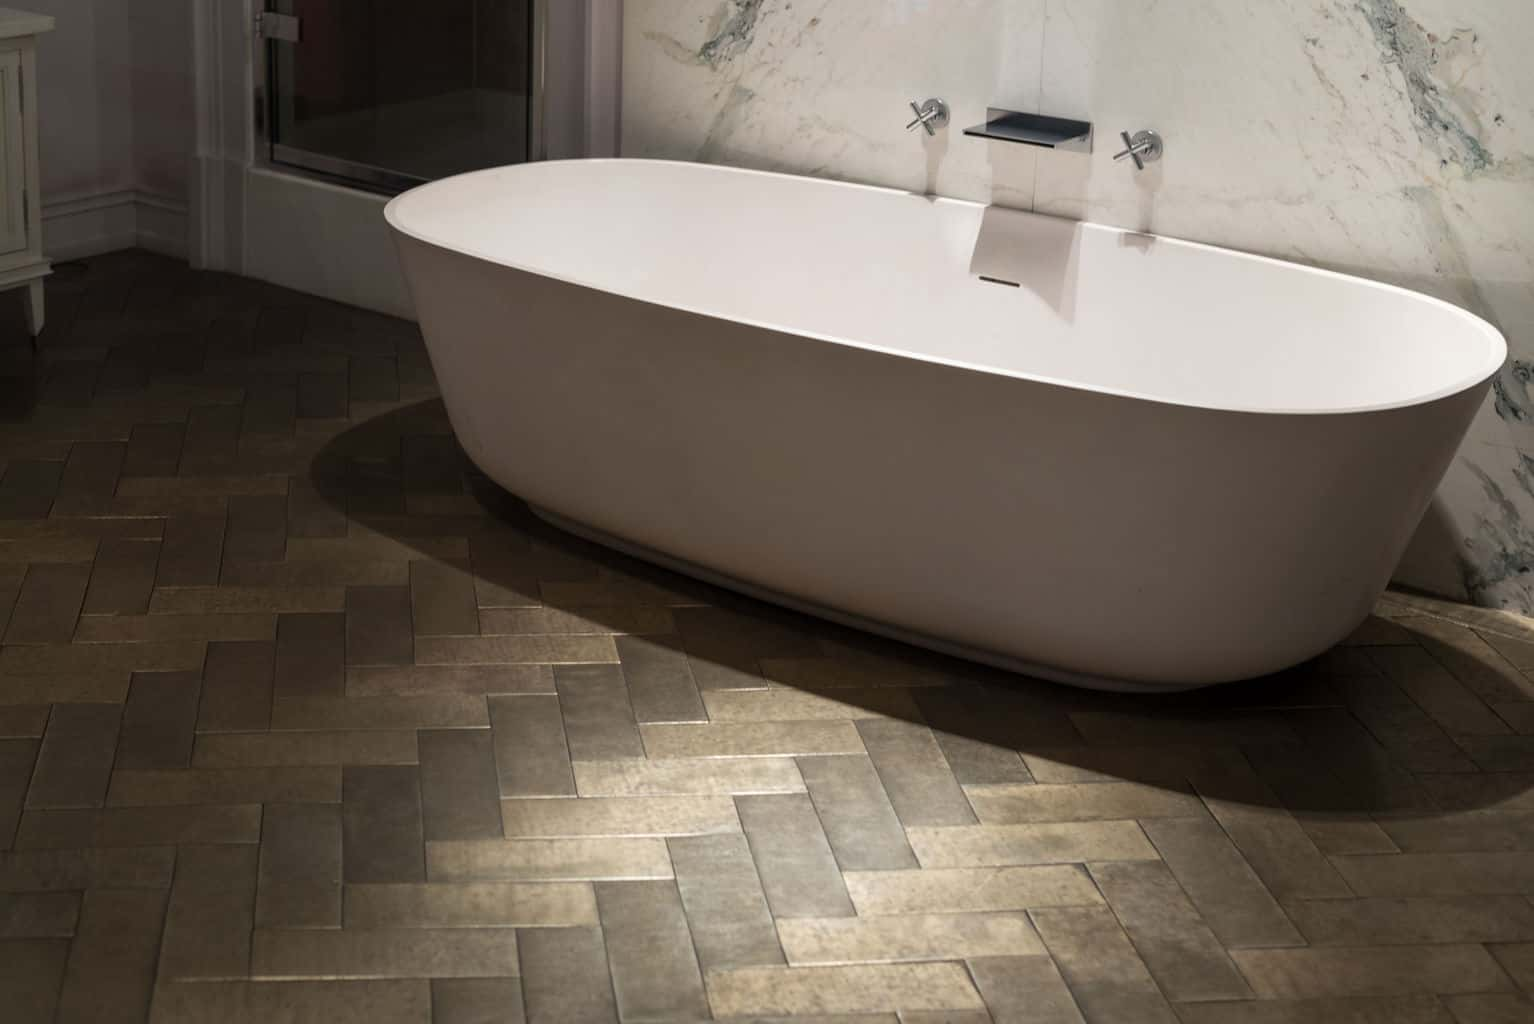 Laminate Flooring For Bathroom laminate flooring bathroom fake the look Pros Of Laminate Flooring In Bathroom Applications